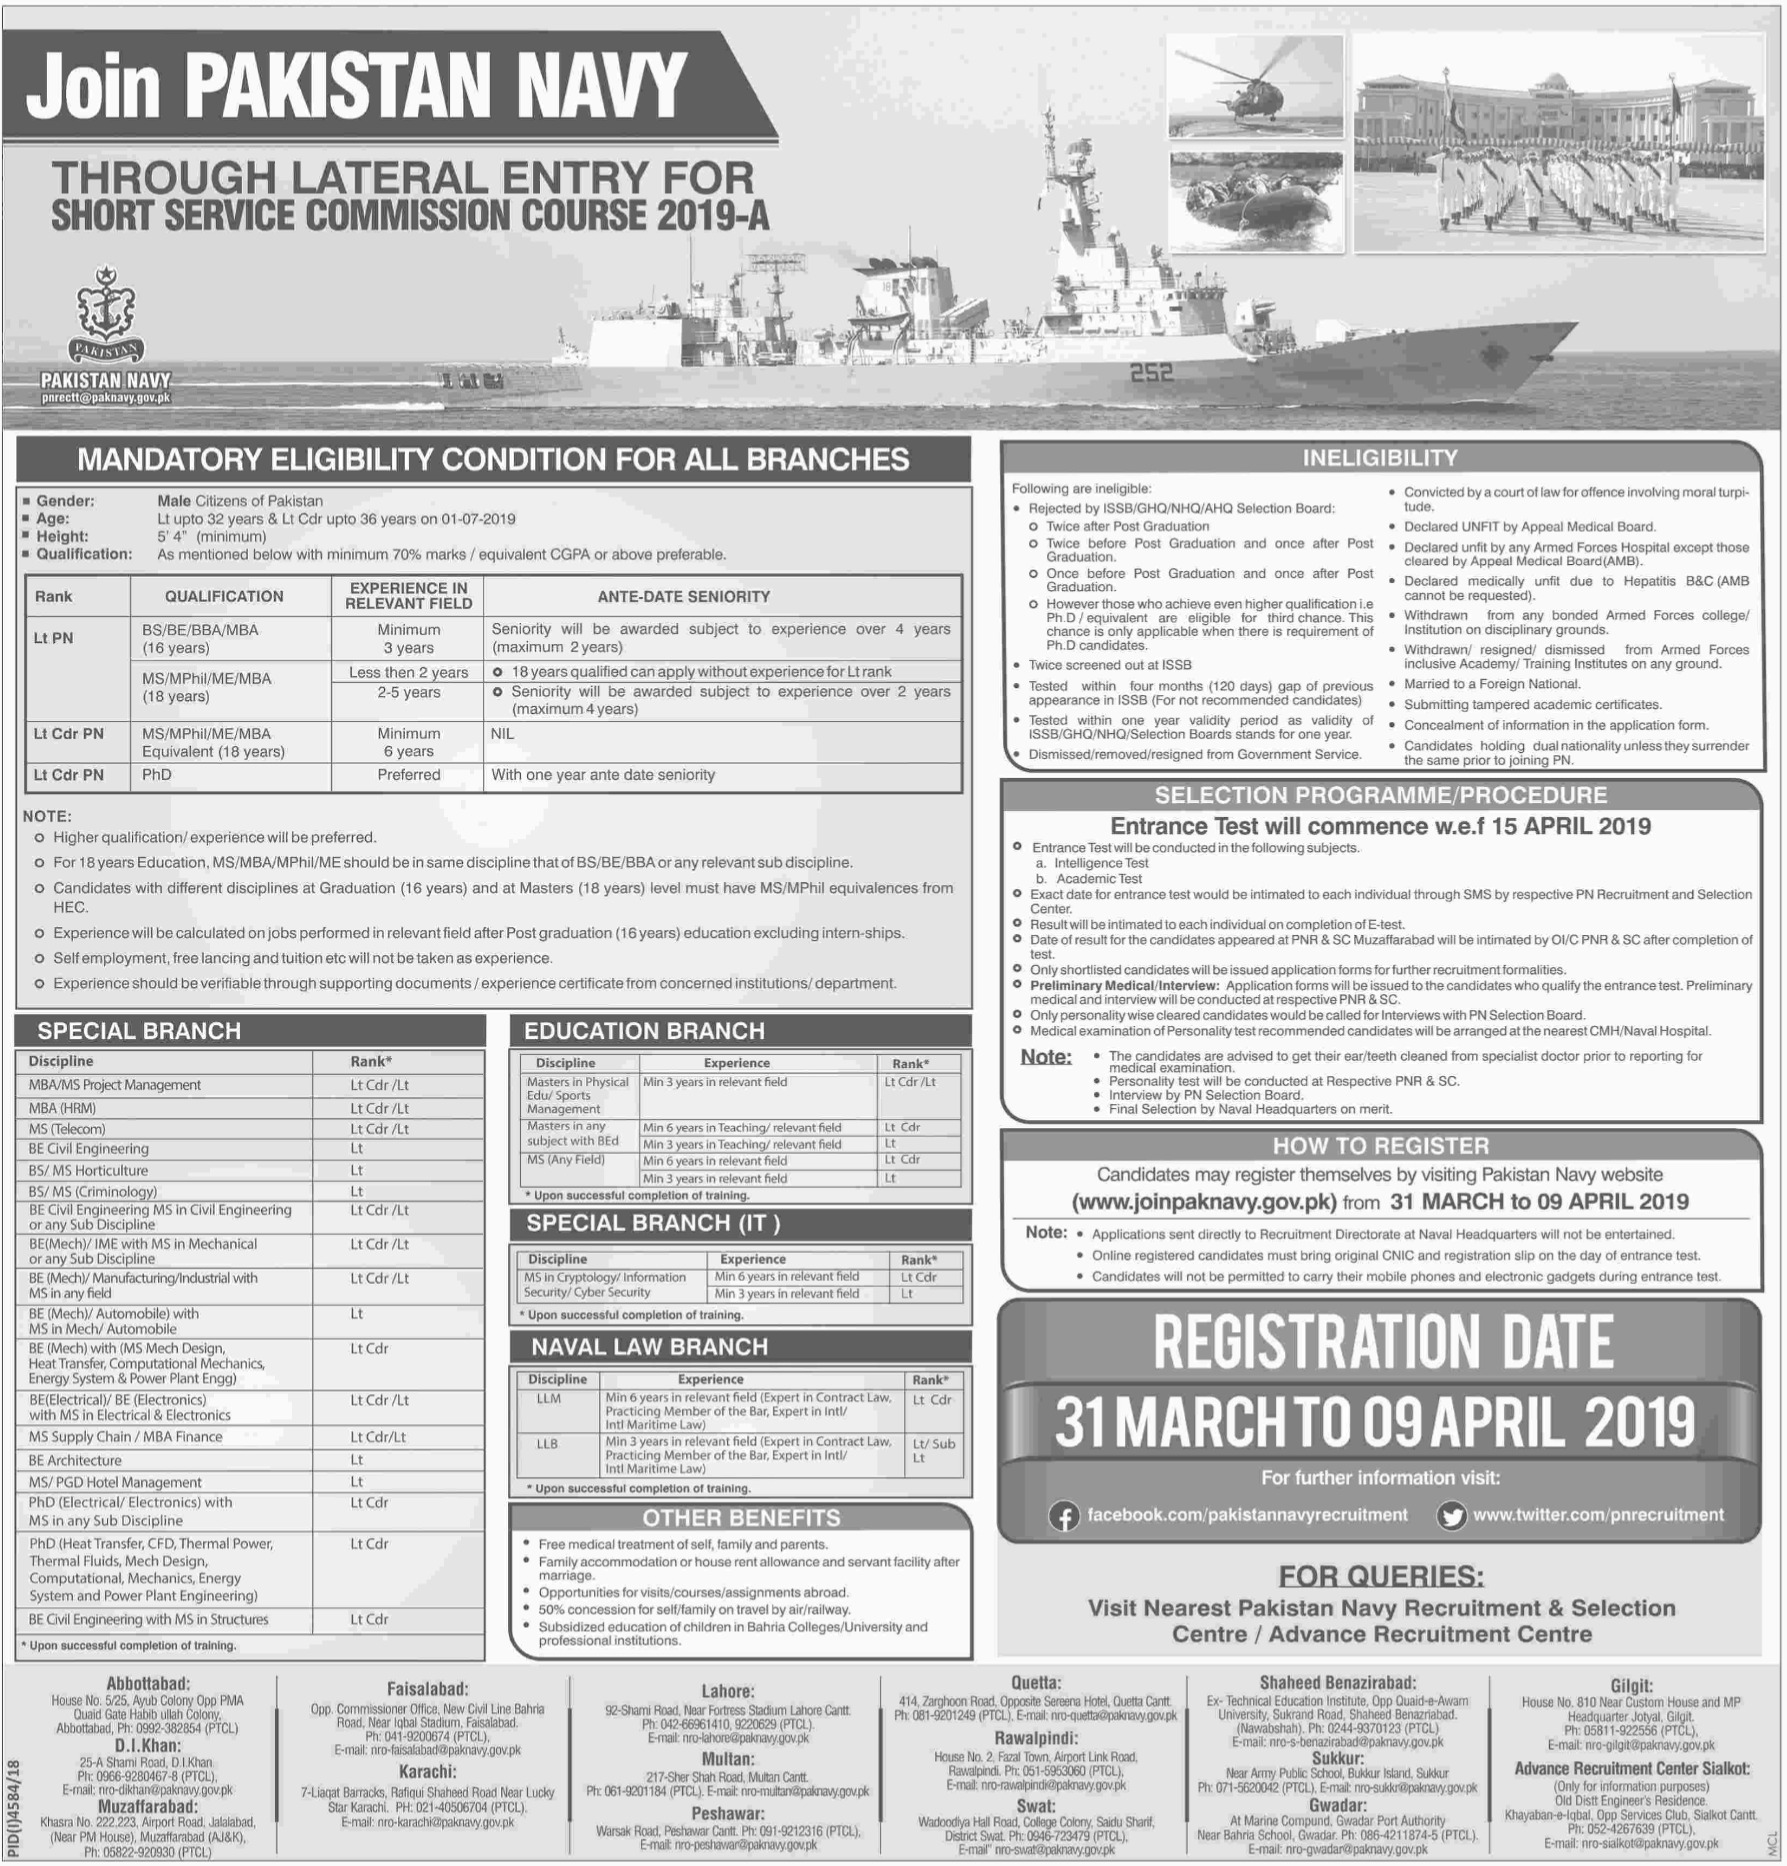 Join Pakistan Navy through Lateral Entry for SSCC 2019-A Latest